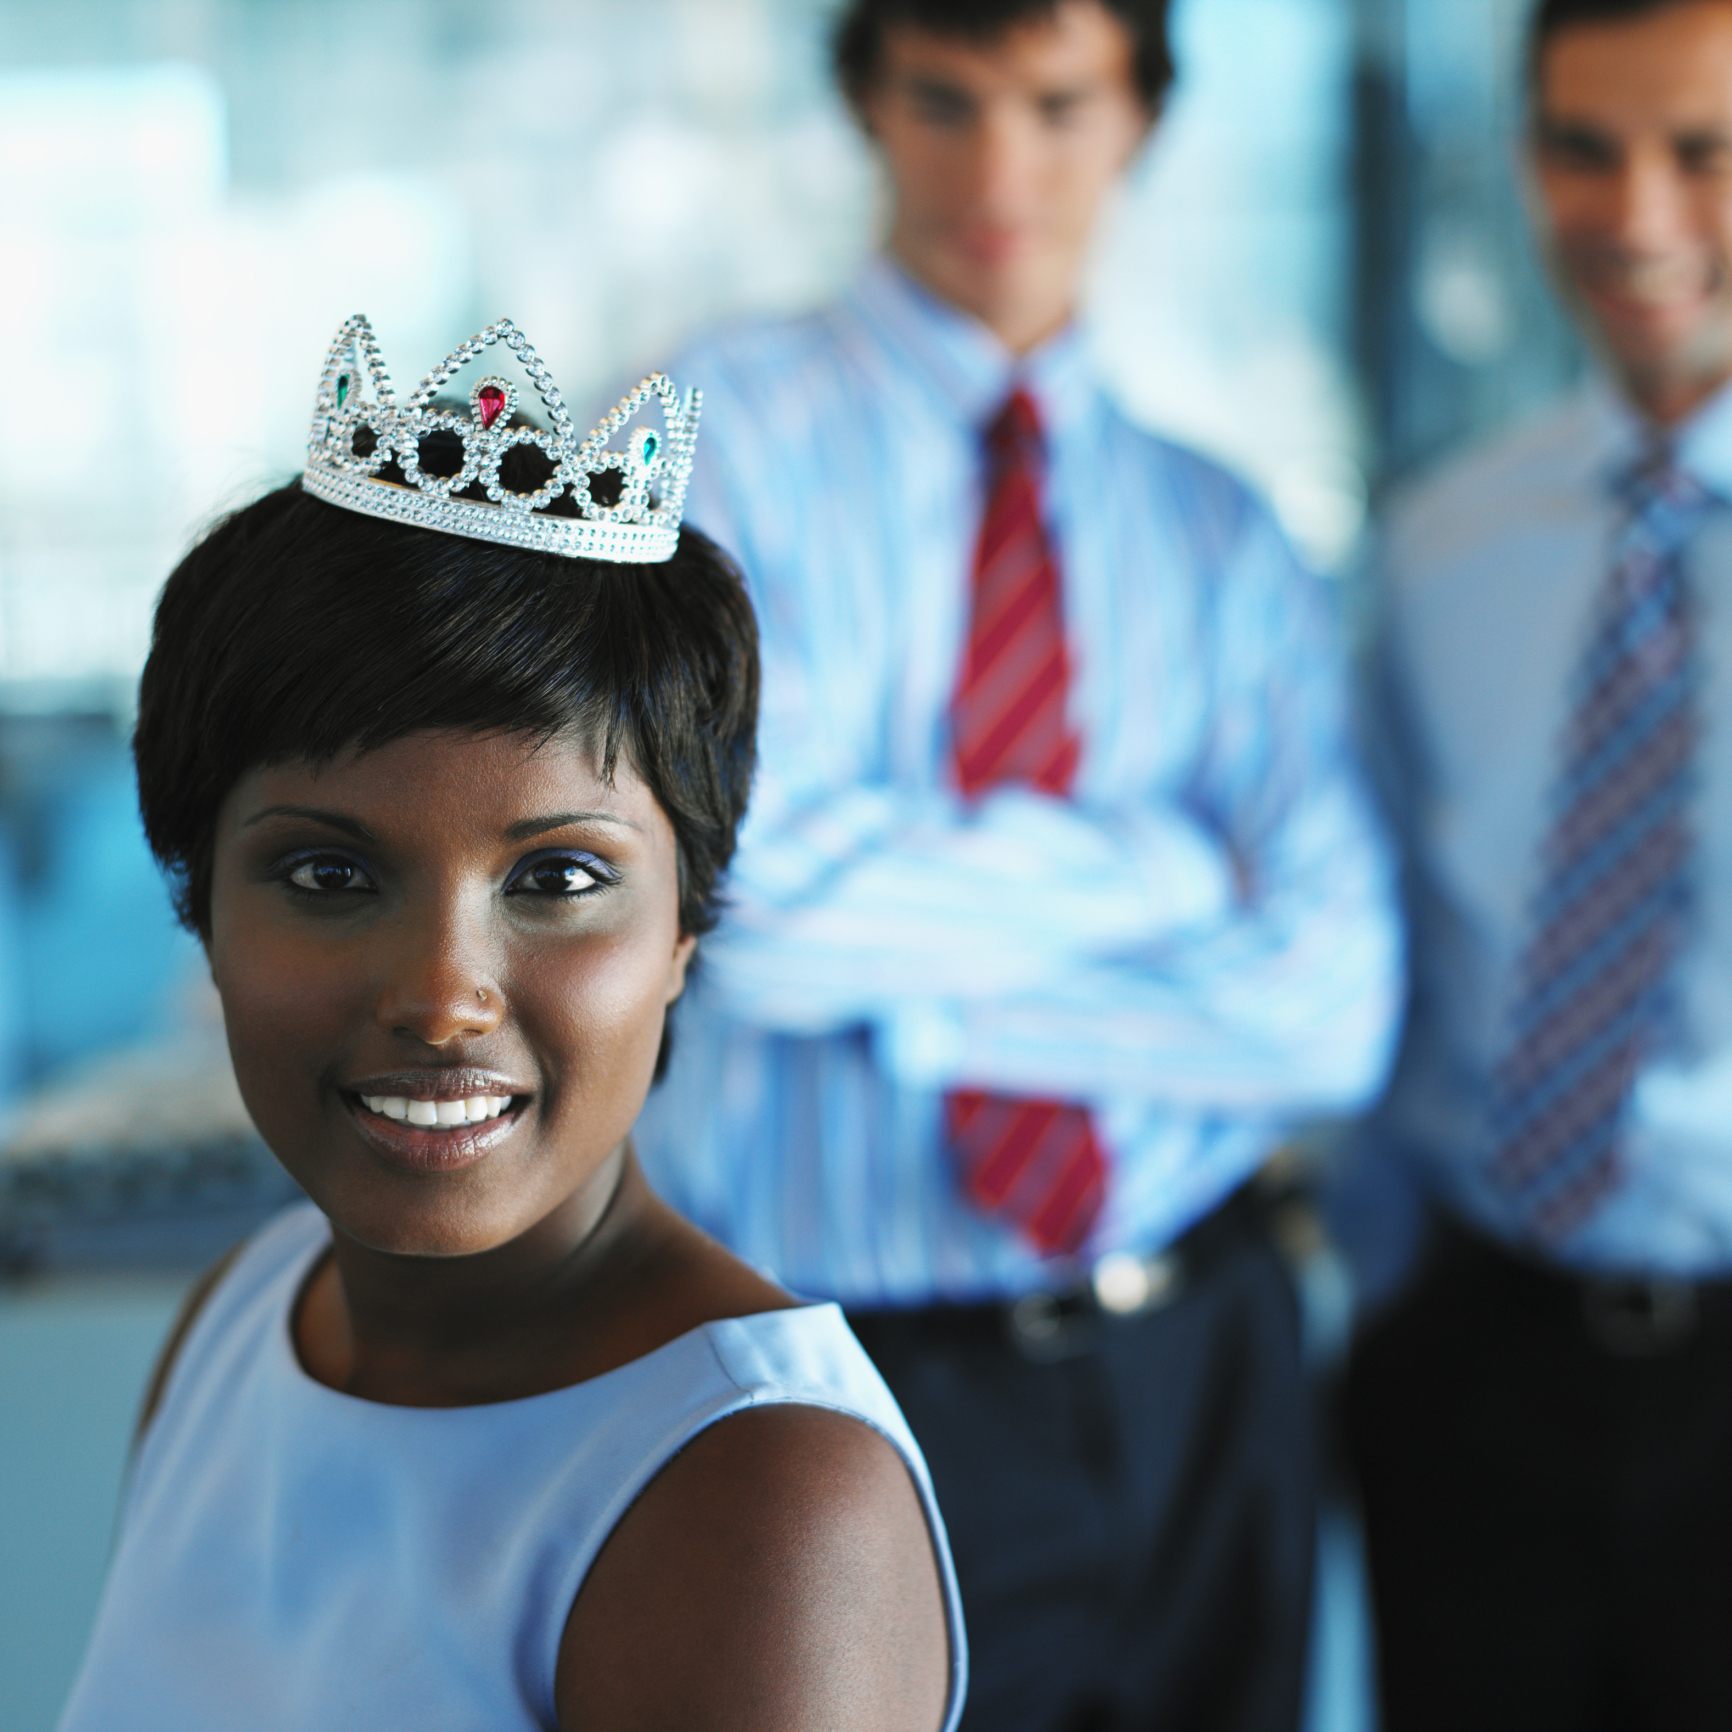 royalty black single women Download sexy black women stock photos affordable and search from millions of royalty free images, photos and vectors.